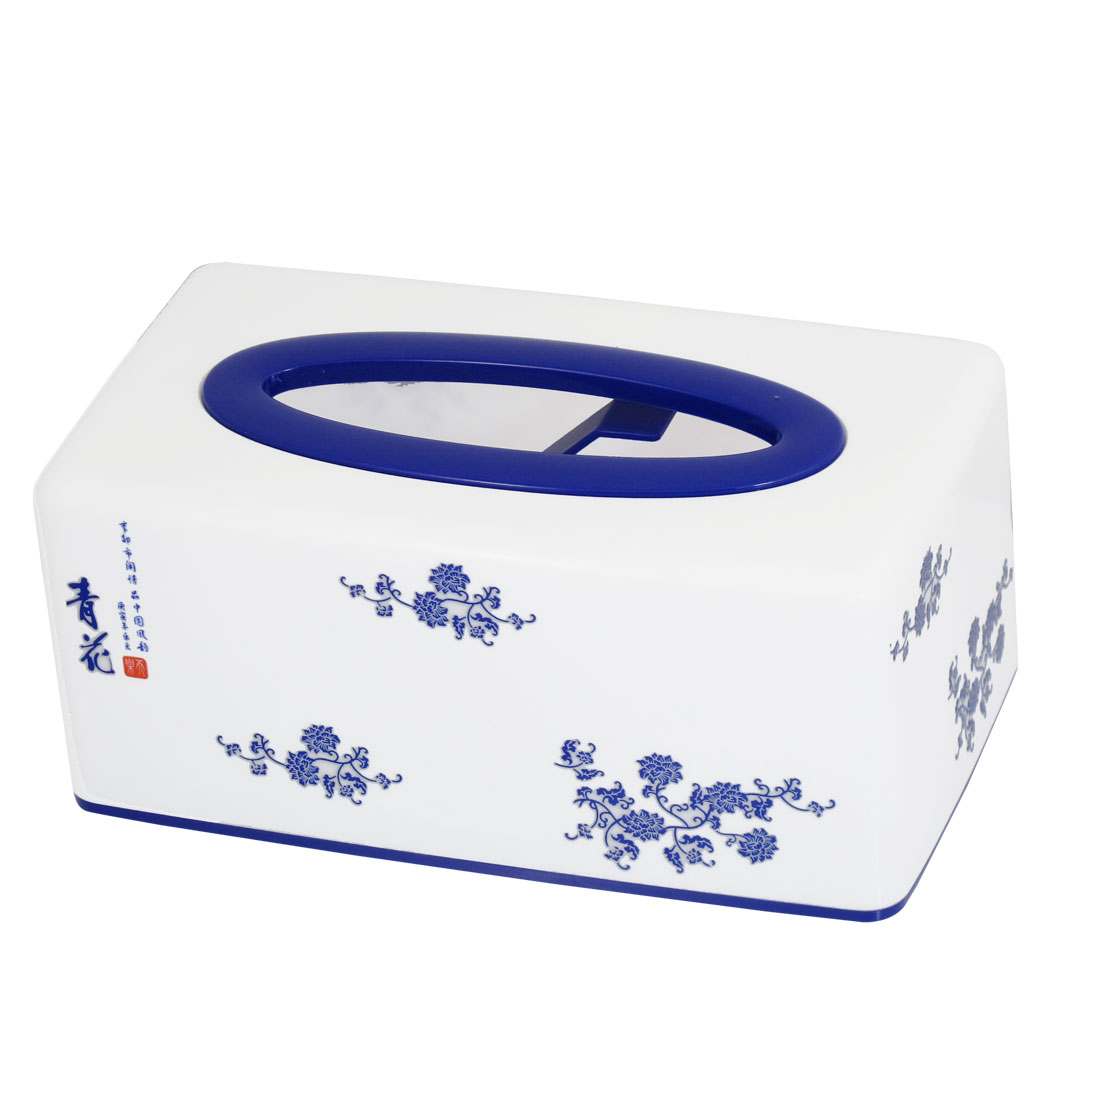 Home Decor Floral Pattern Rectangular Plastic Tissue Box White Blue